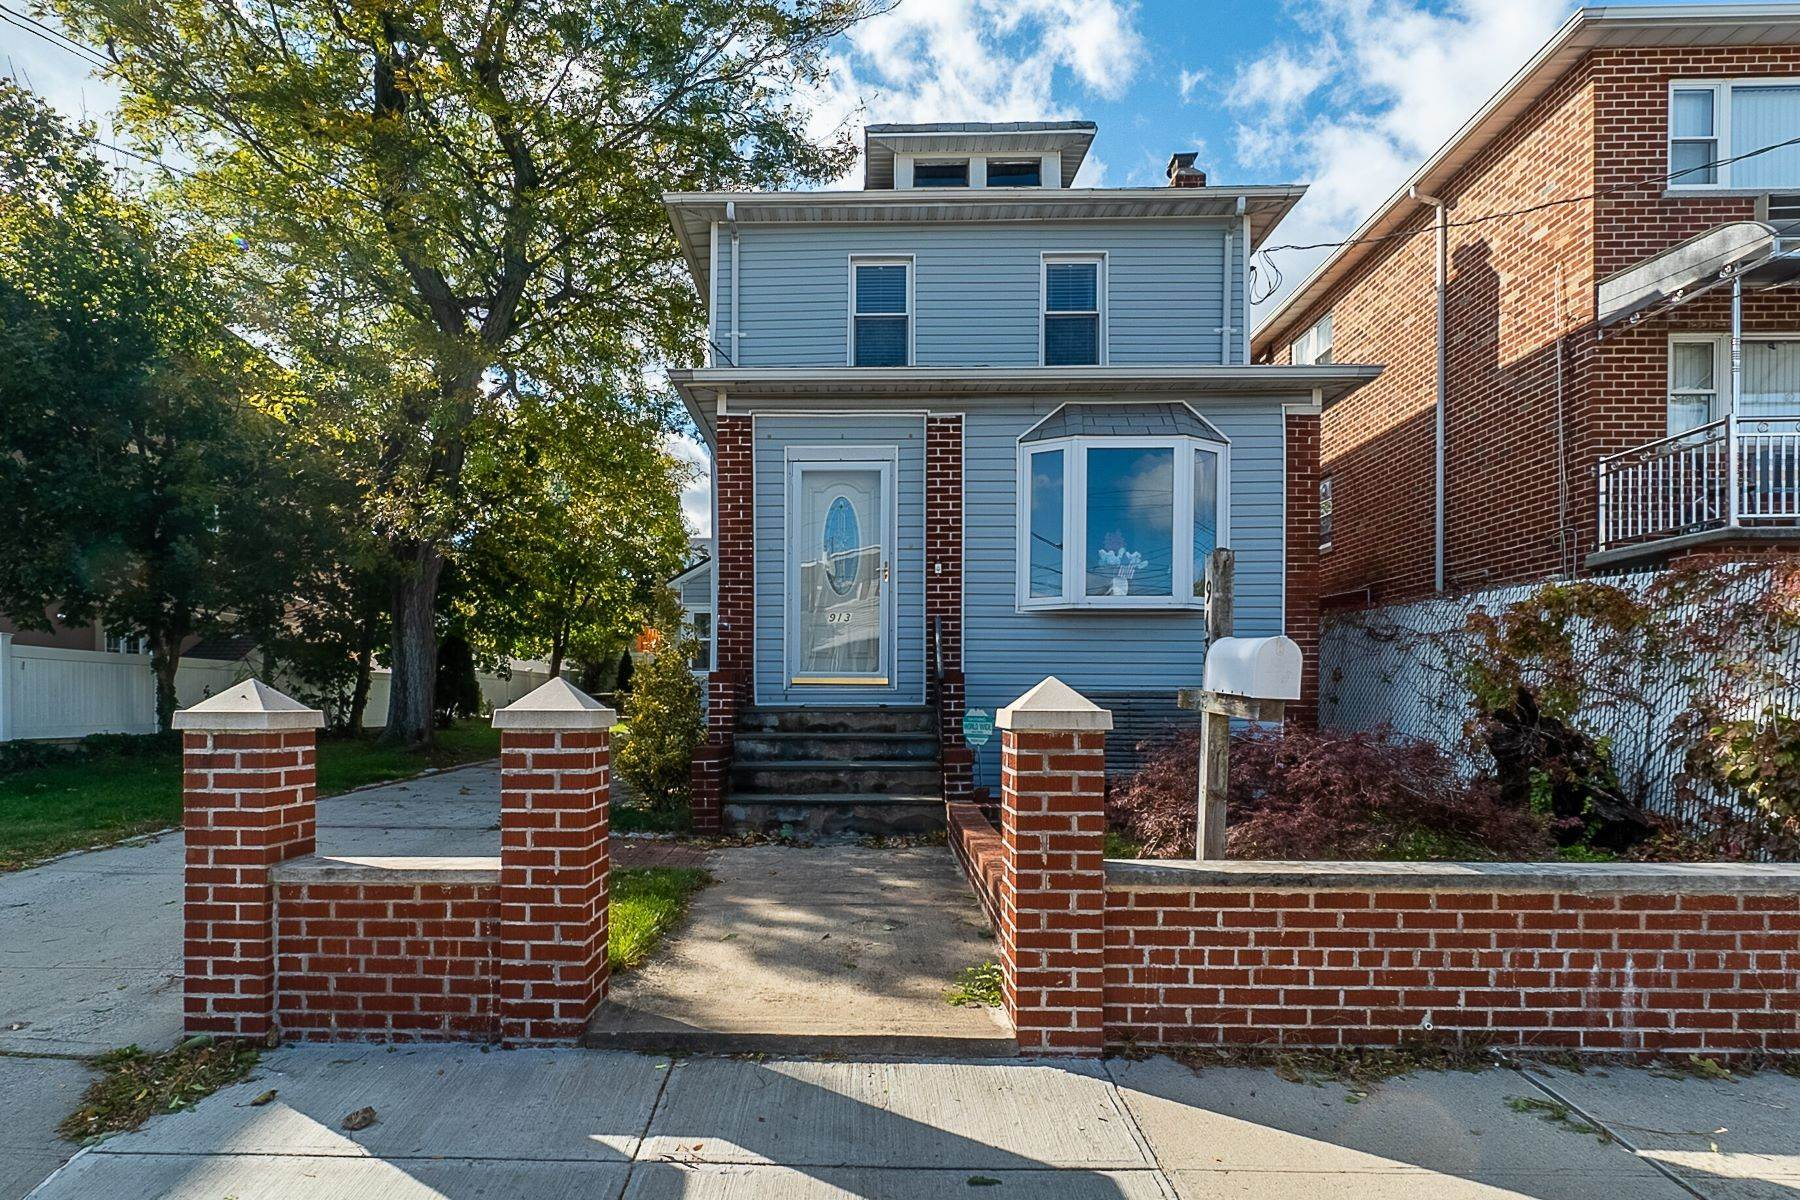 Single Family Homes for Sale at 913 Dean Avenue, Bronx, Ny, 10465 913 Dean Avenue Bronx, New York 10465 United States